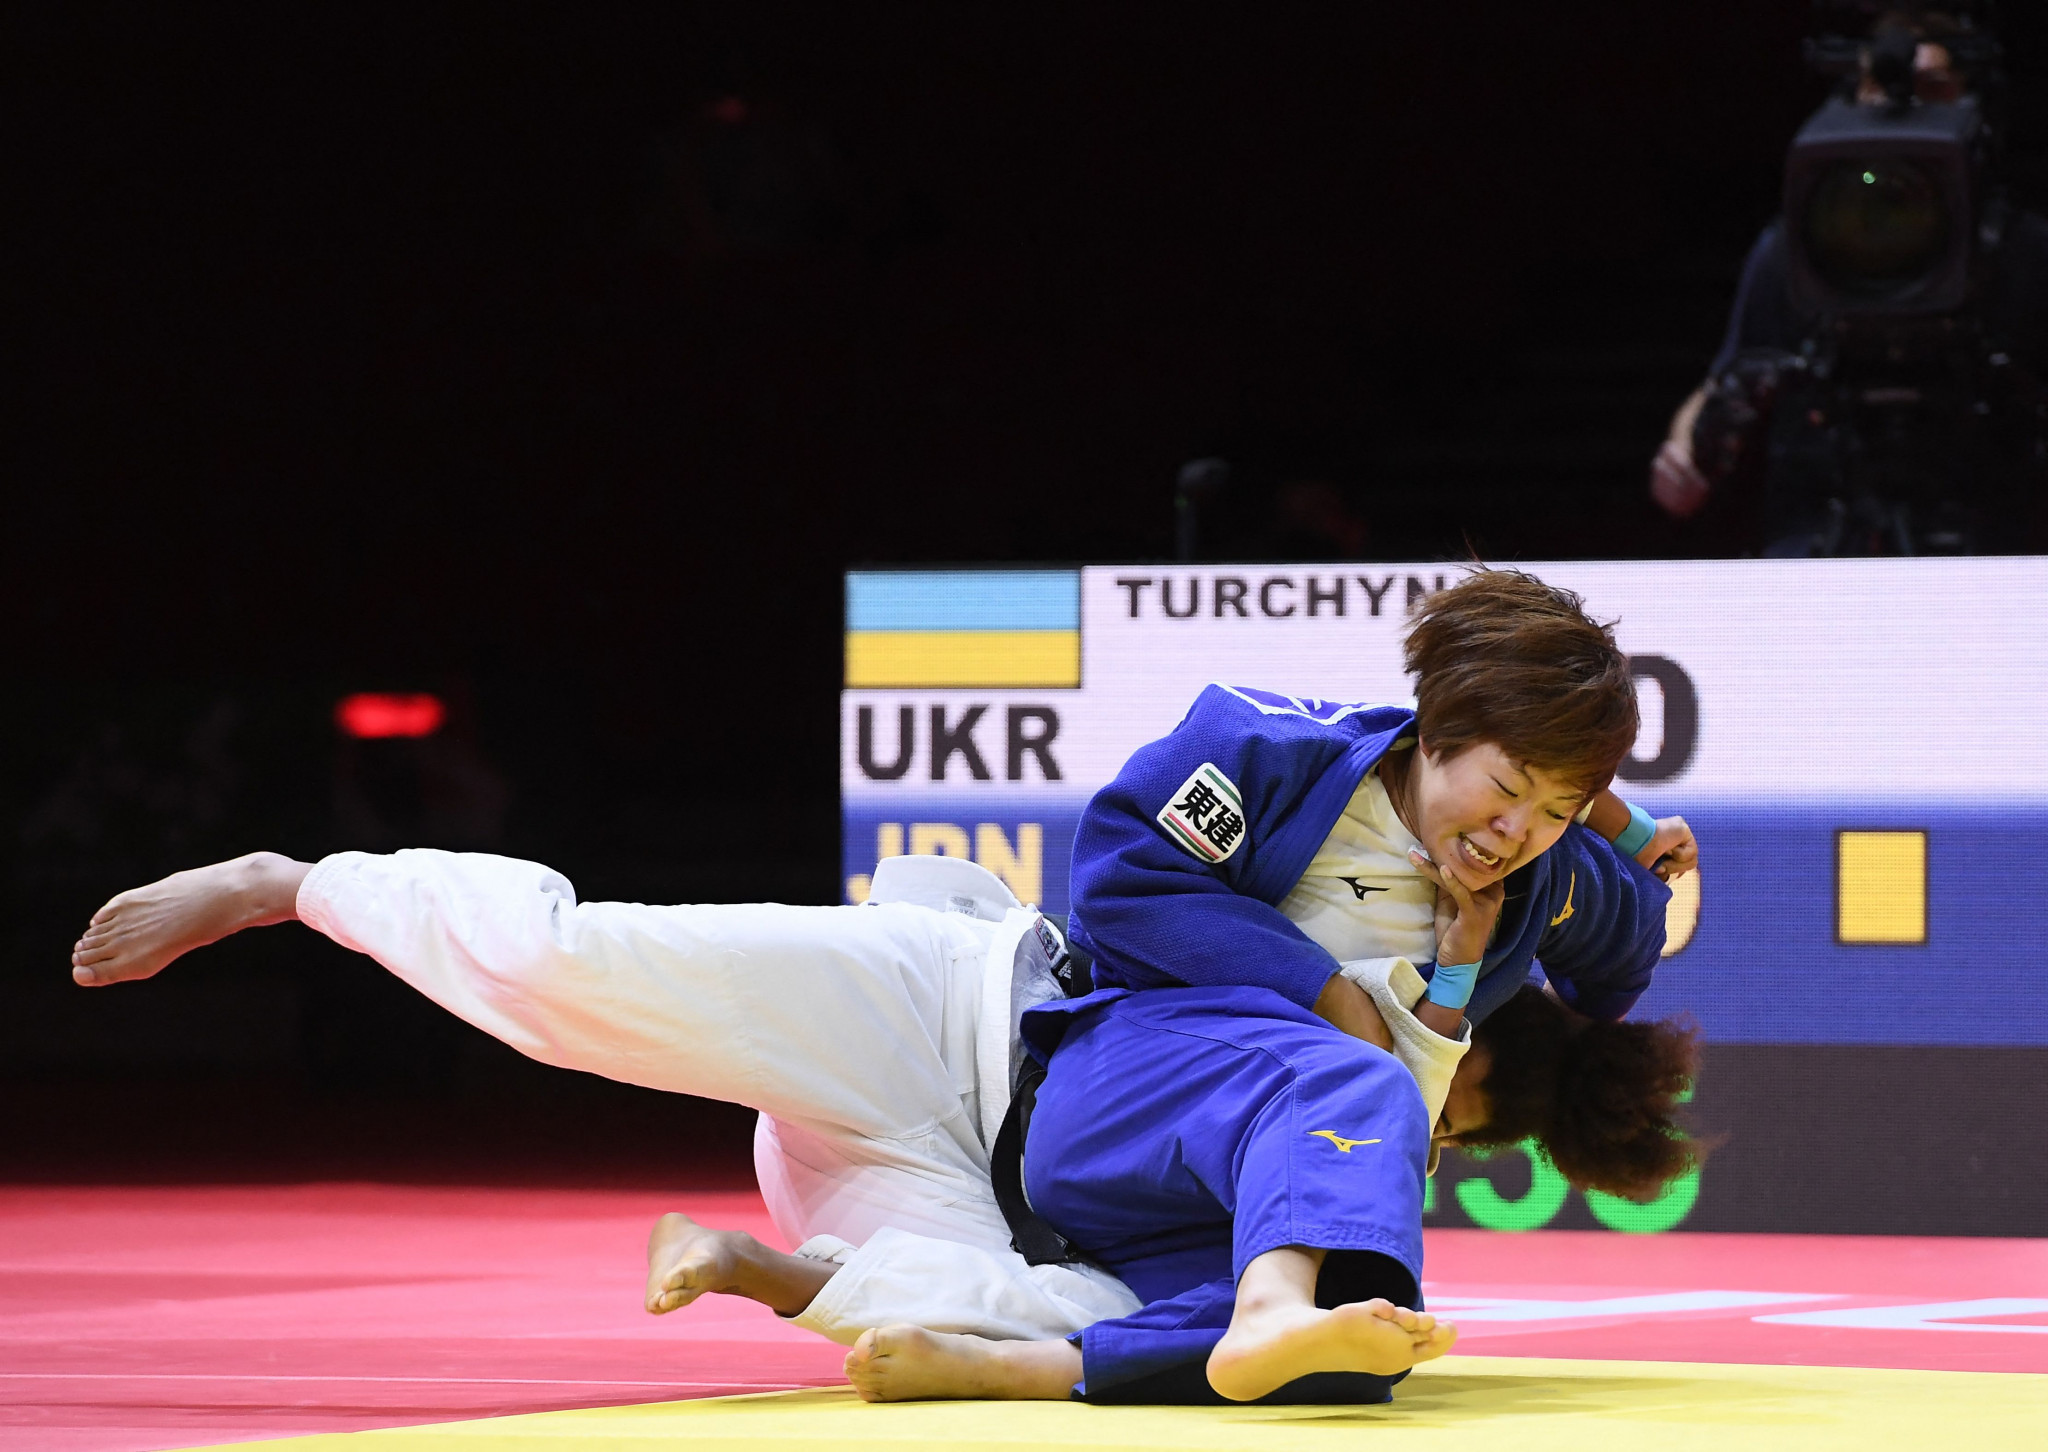 Mami Umeki of Japan added a bronze to her world gold and silver with a win over Anastasiya Turchyn ©Getty Images